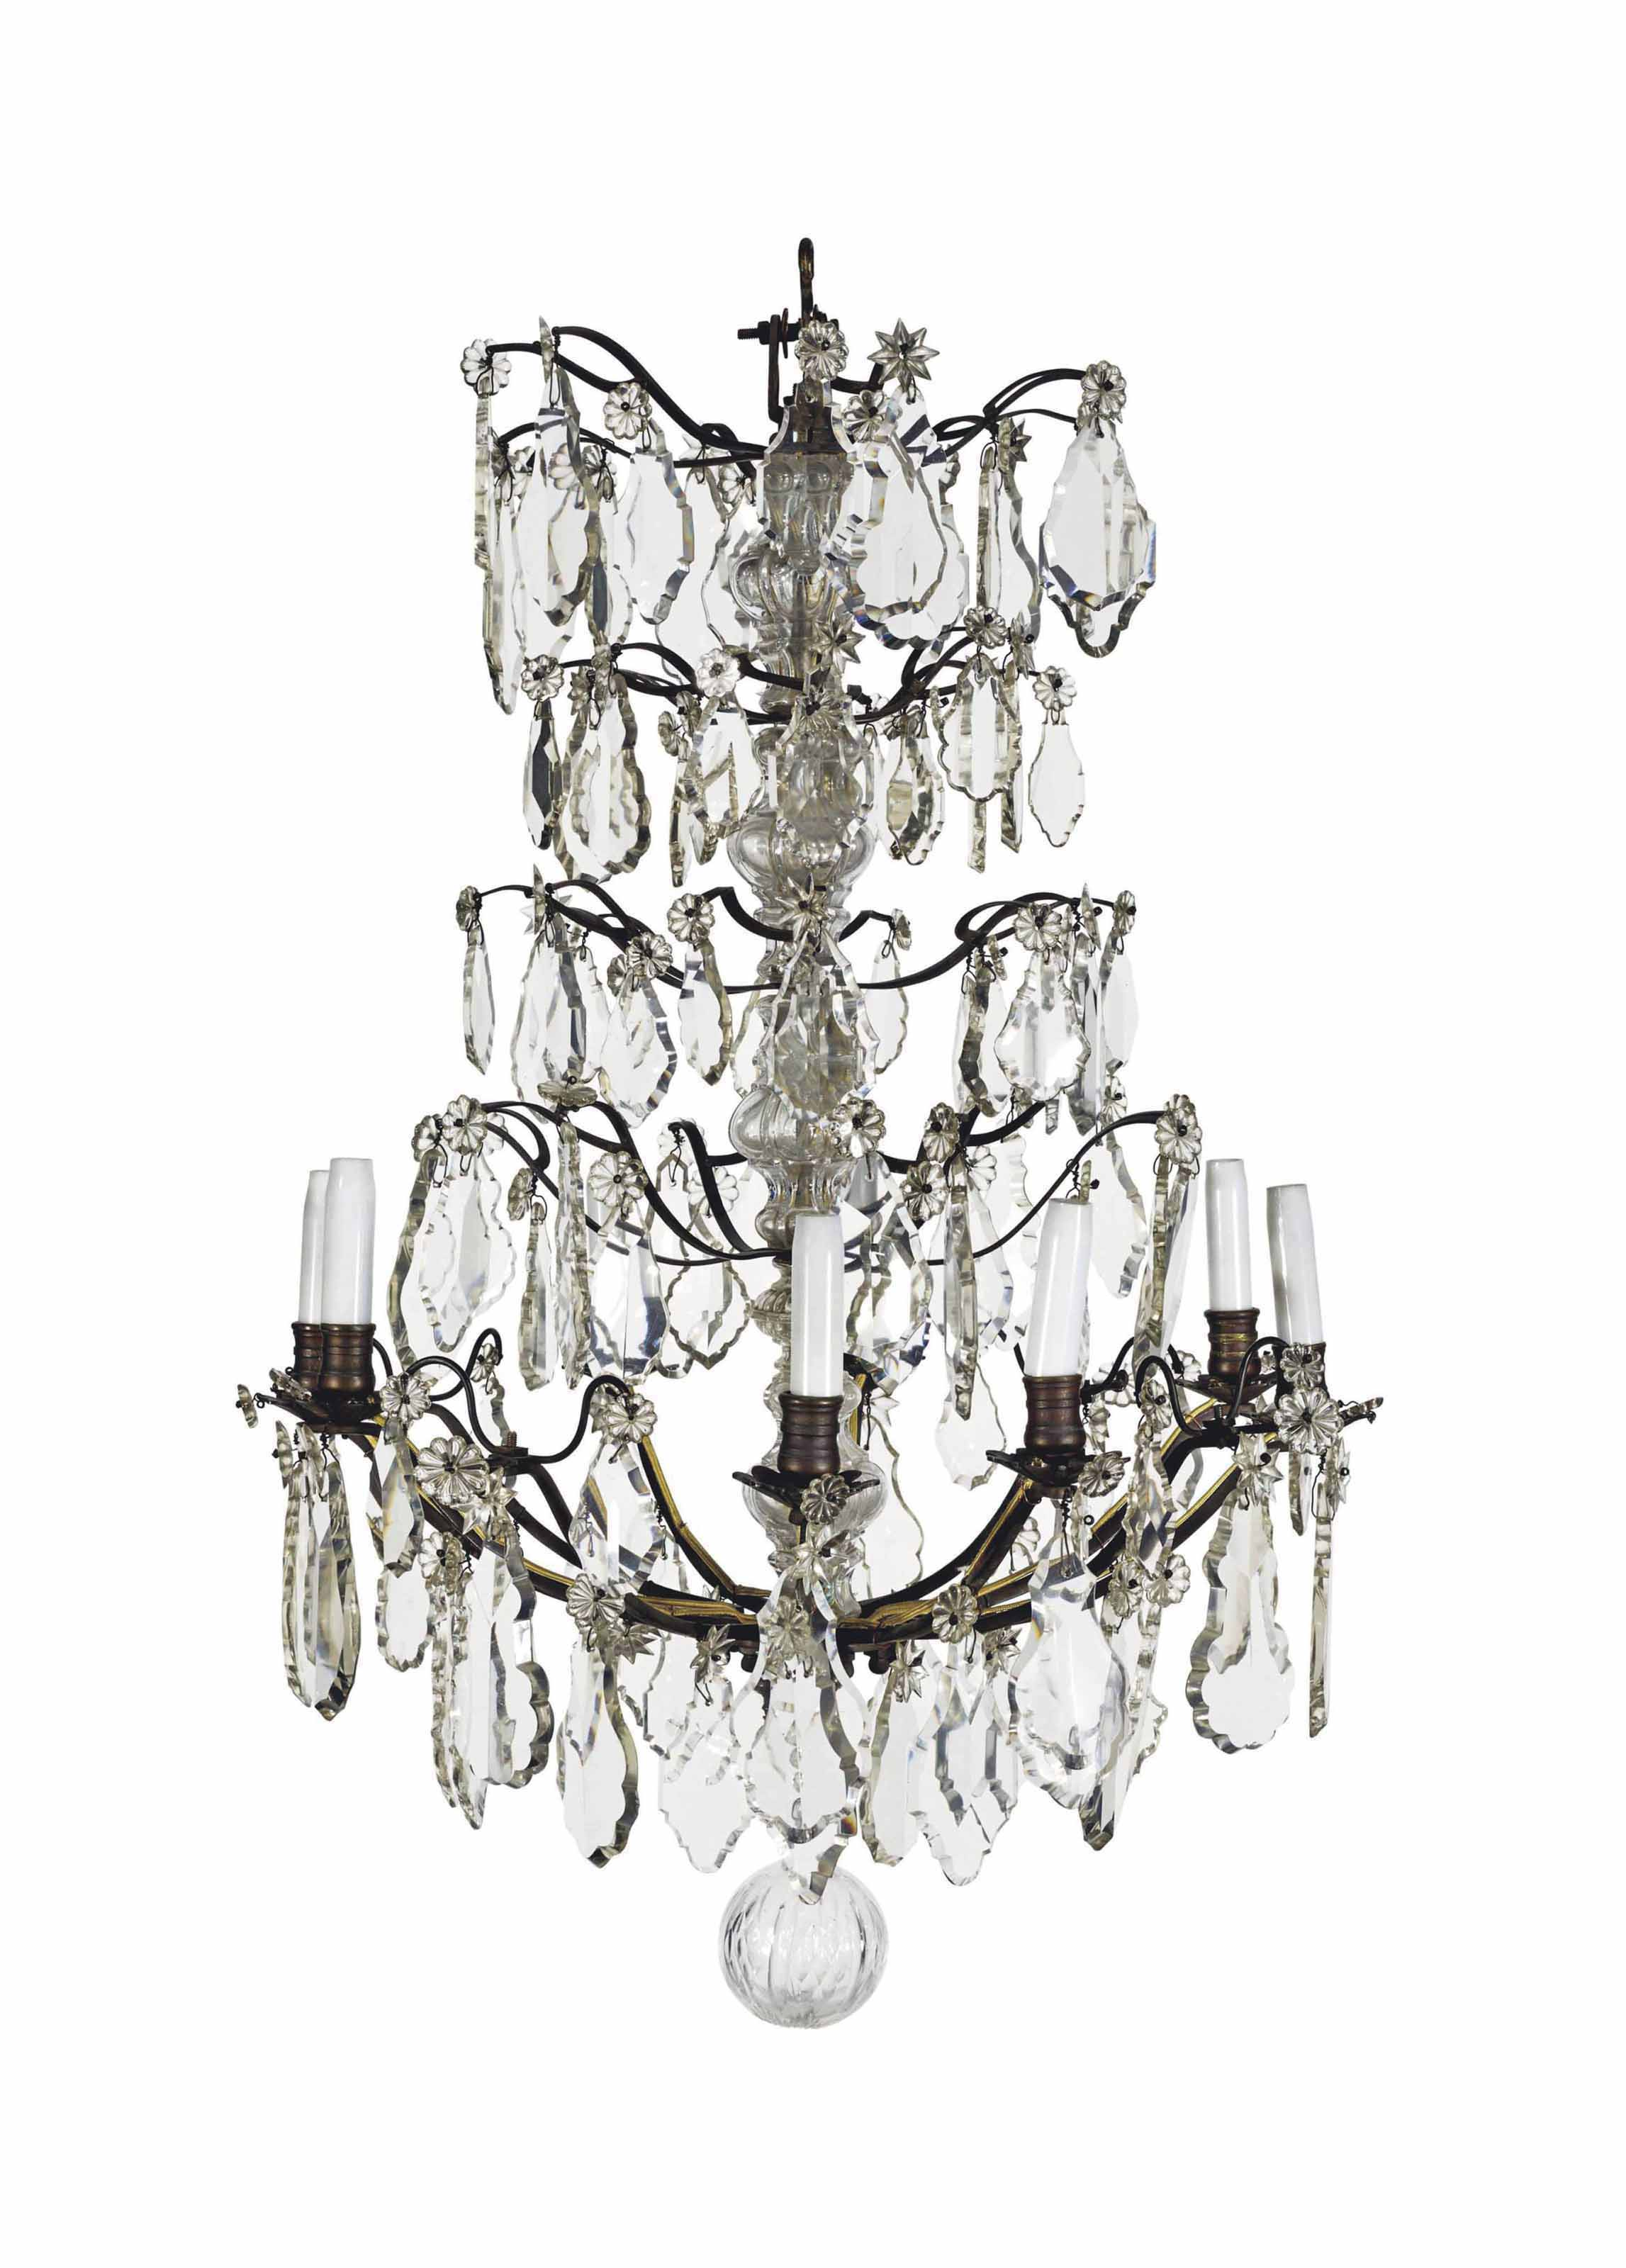 Lustre Cage Lustre Cage De Style Louis Xv Vers 1900 Furniture Lighting